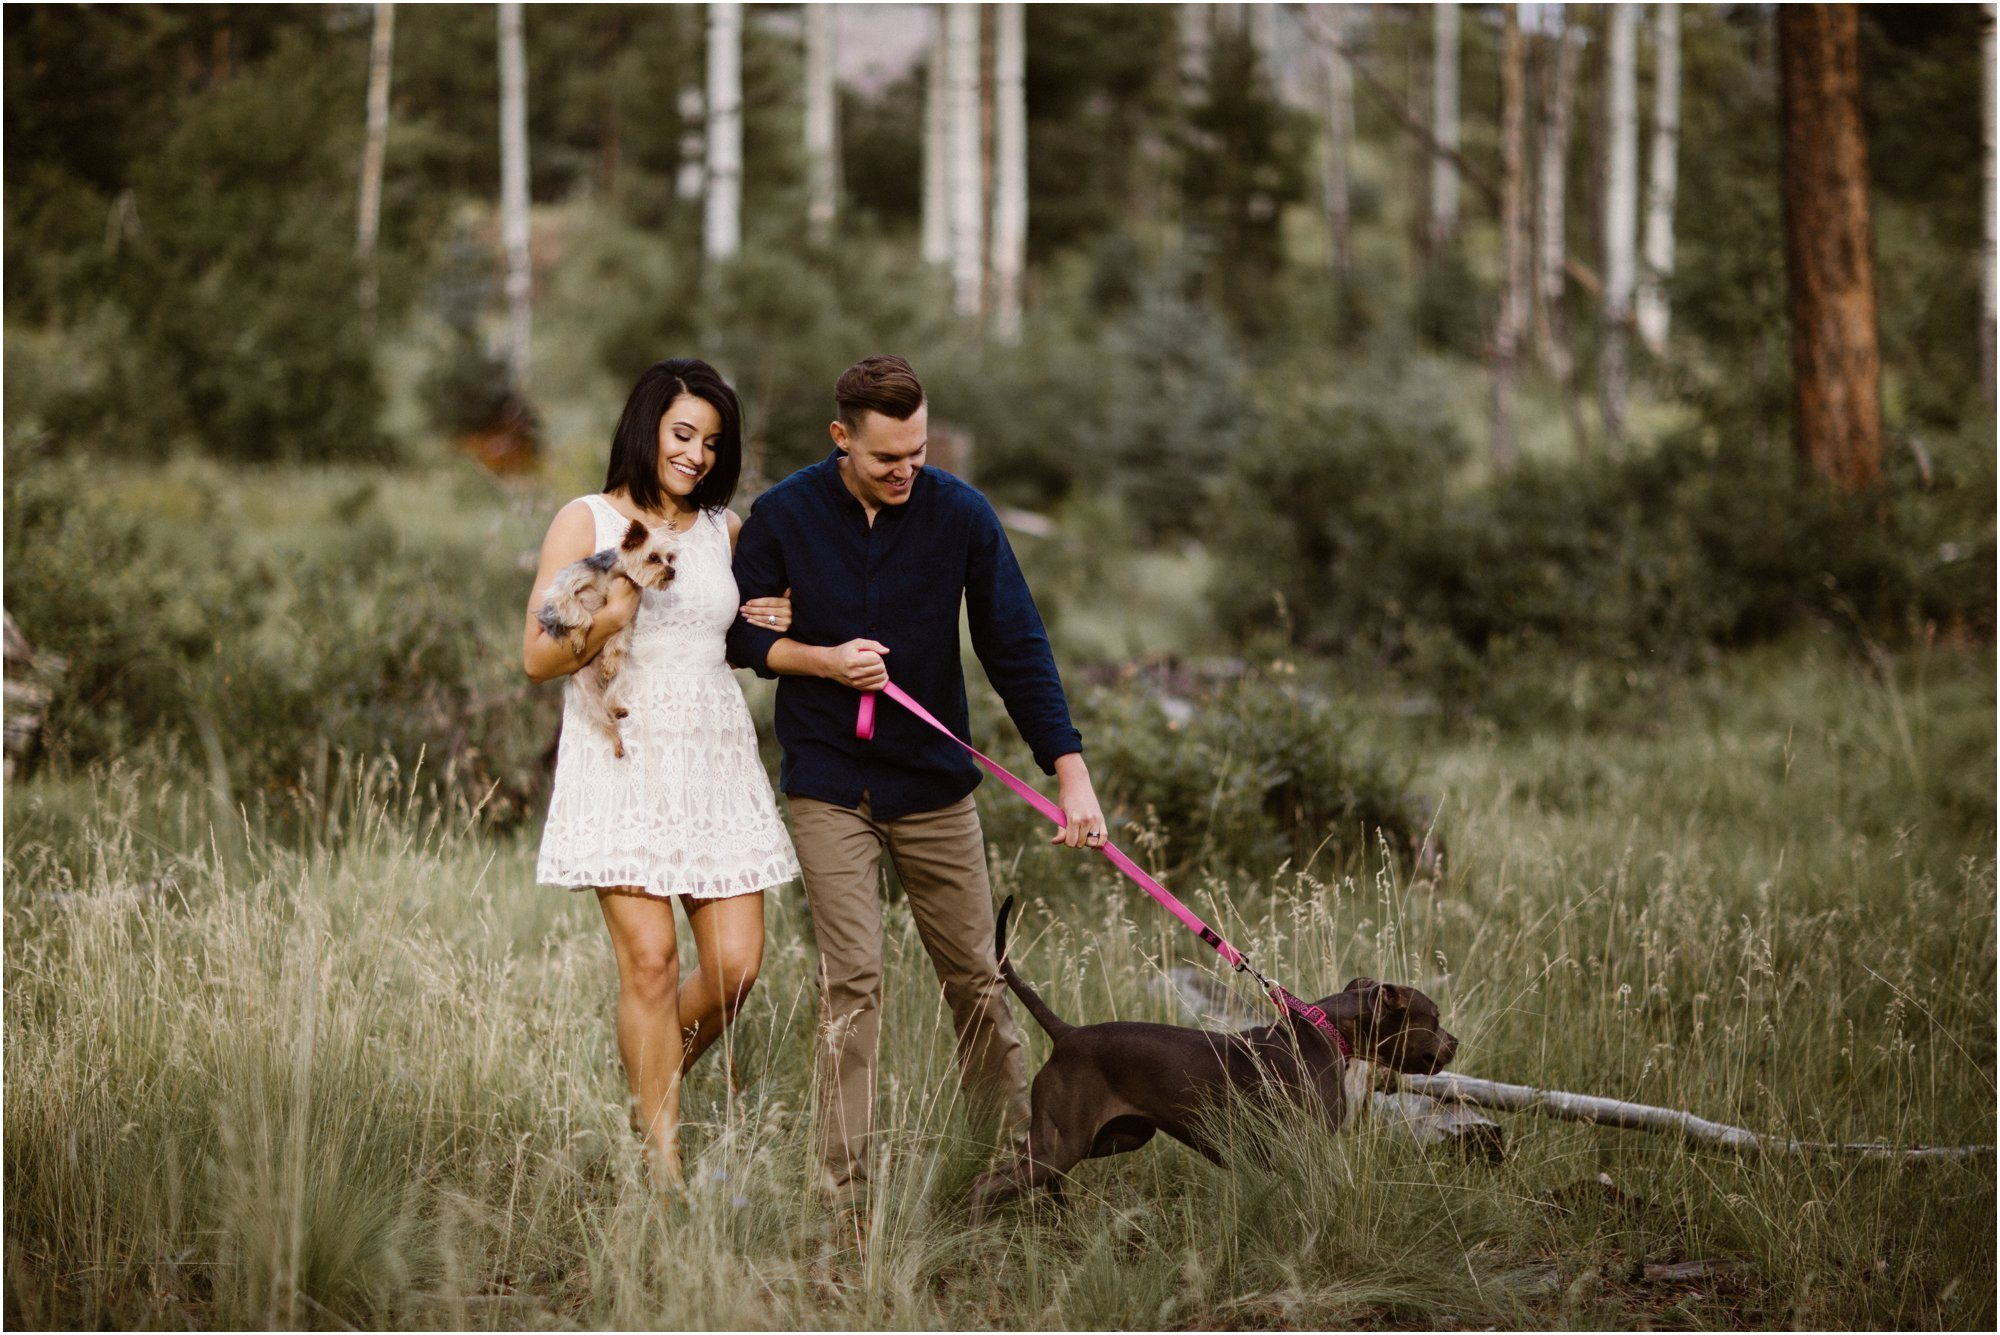 067Blue Rose Photography_ Albuquerque Engagement Photographer_ Blue Rose Studios_ Anniversary Pictures Santa Fe Photographer